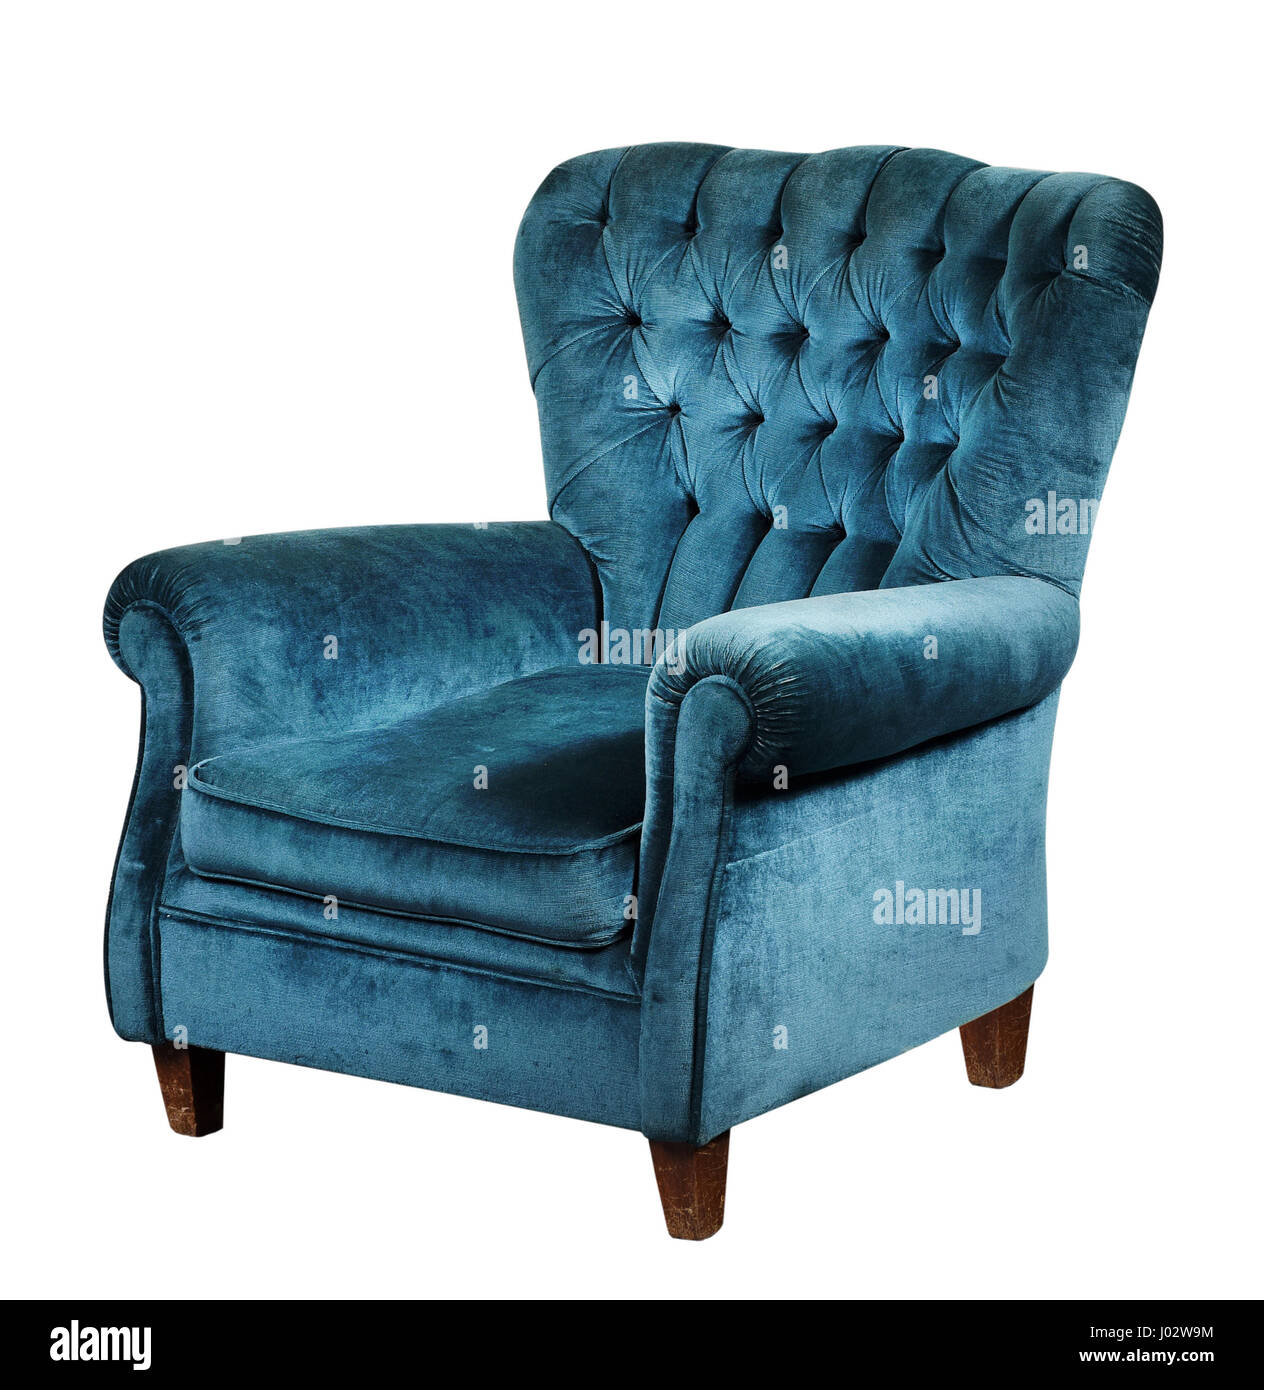 Blue Velvet Armchair With High Back And Short Wooden Legs, Isolated On  White Background